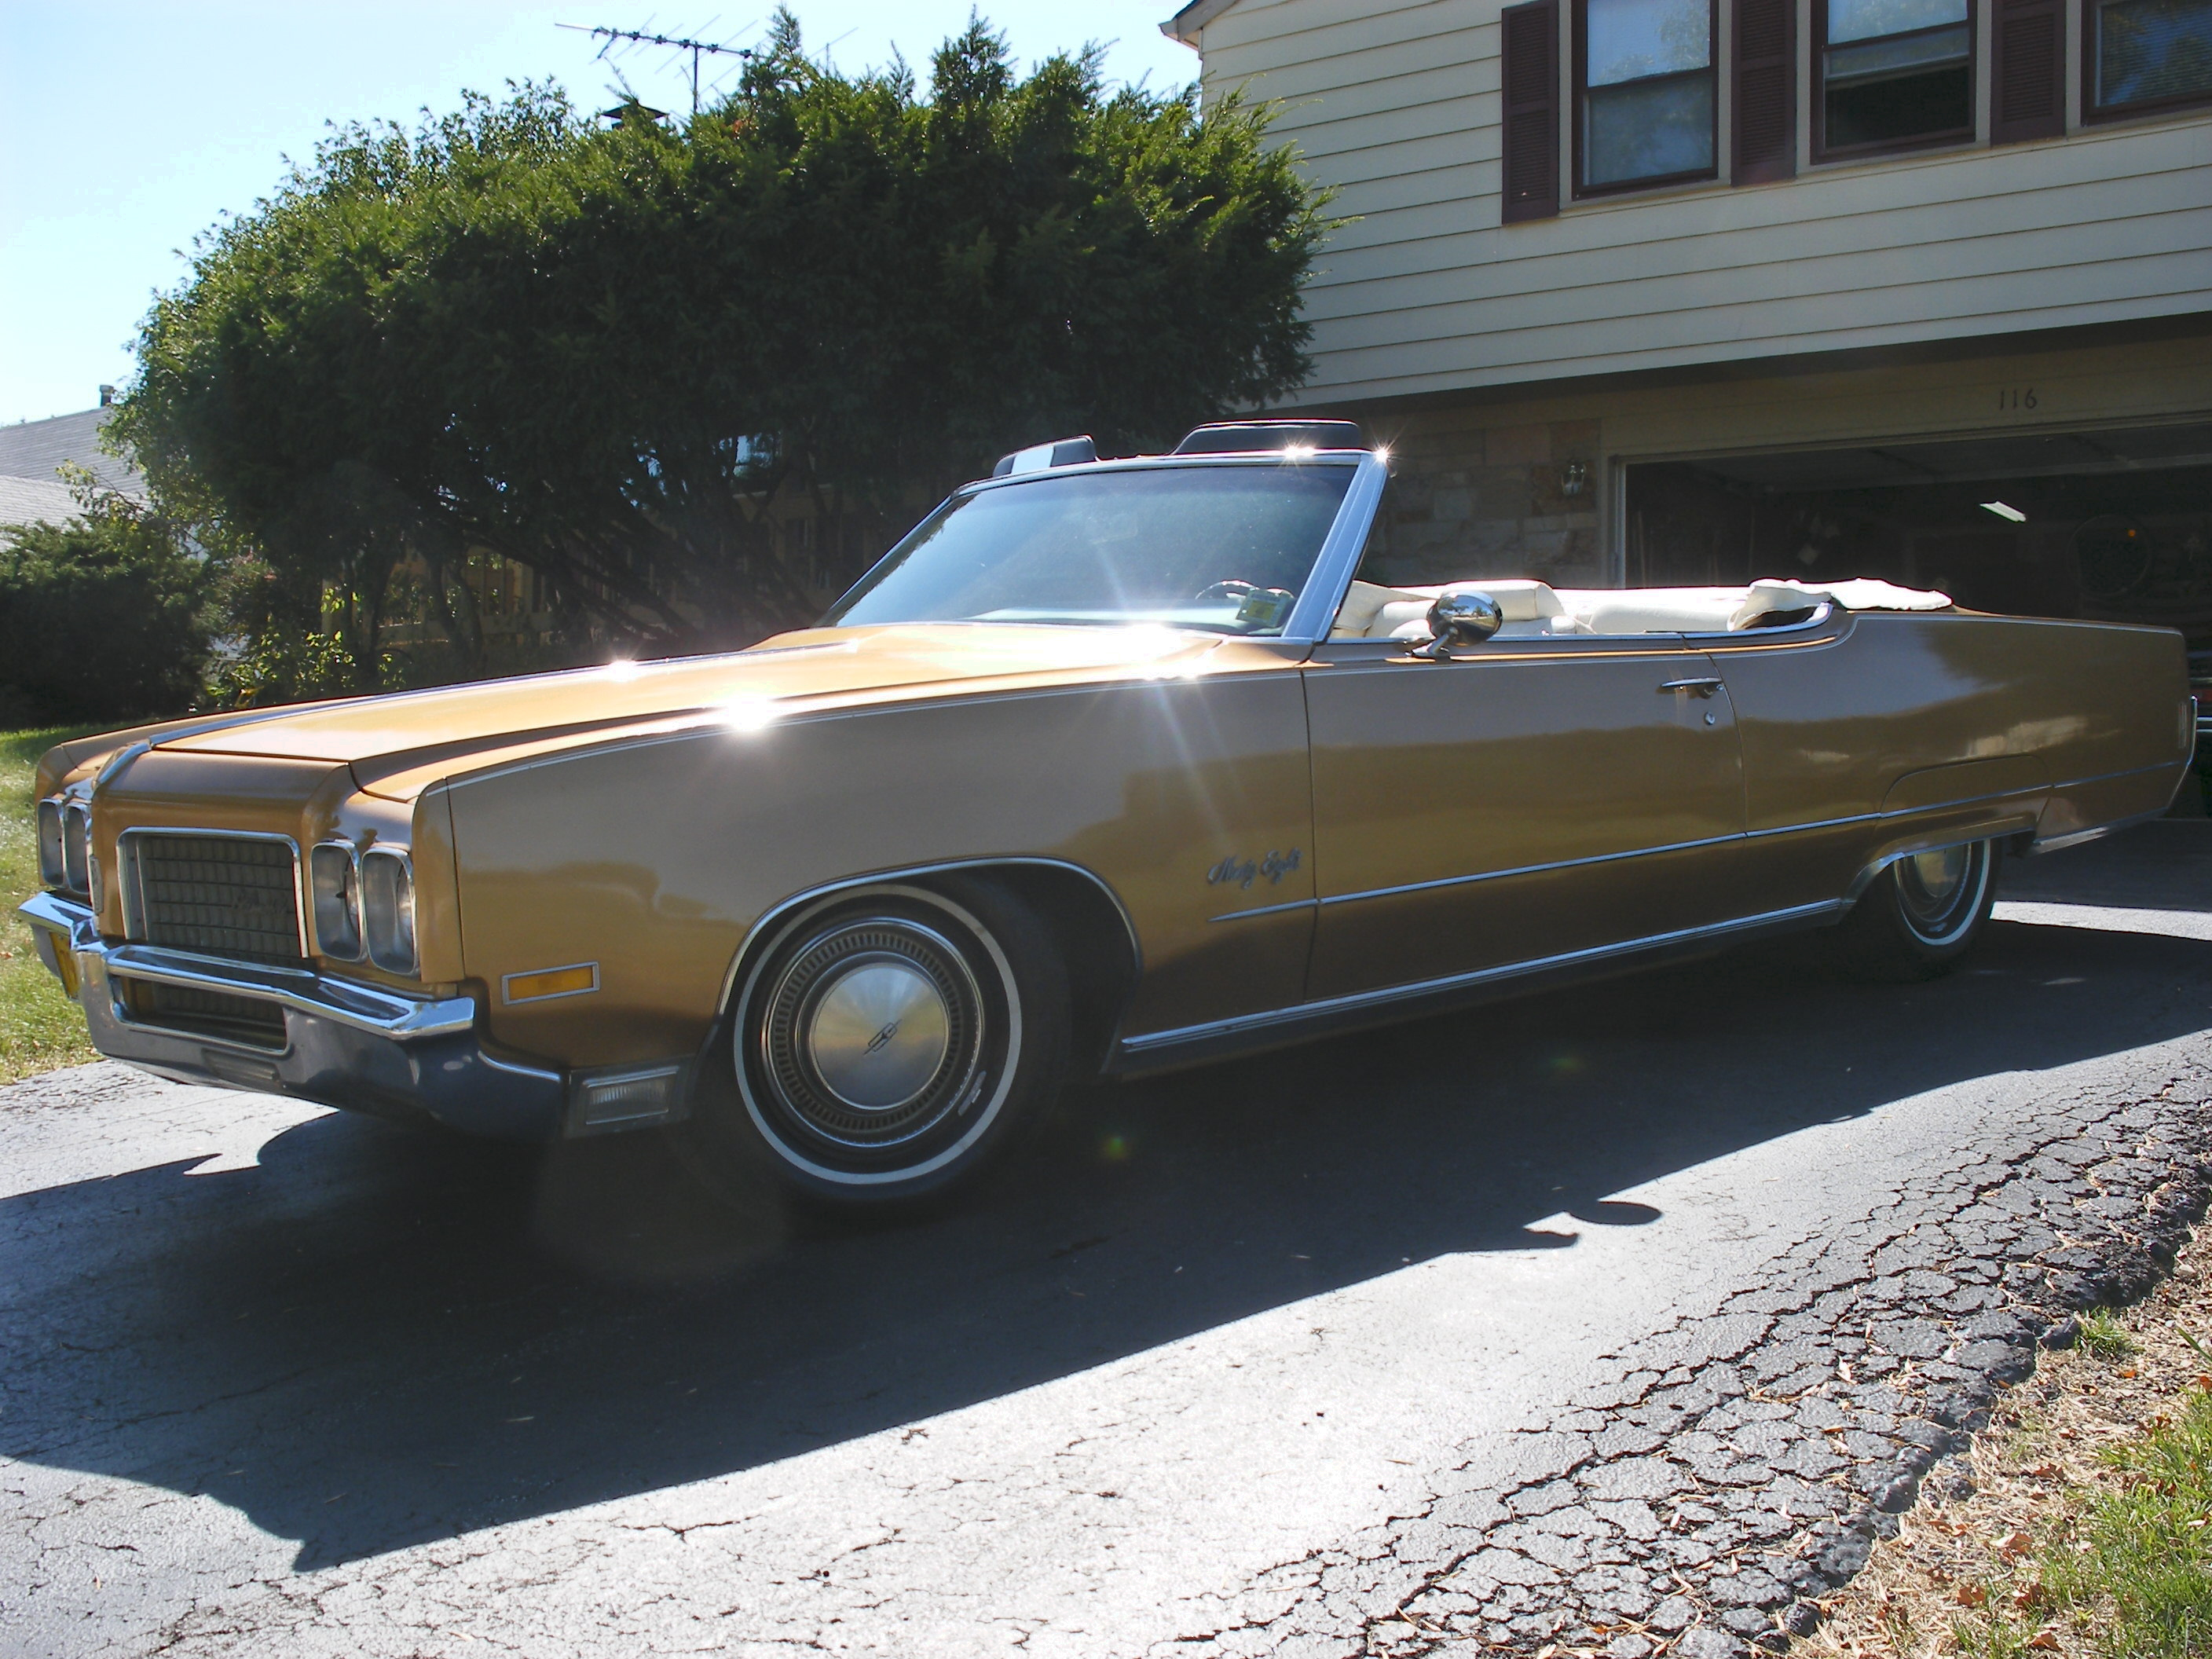 1970 Oldsmobile 98 Convertible, 455 Rocket, Southern Car